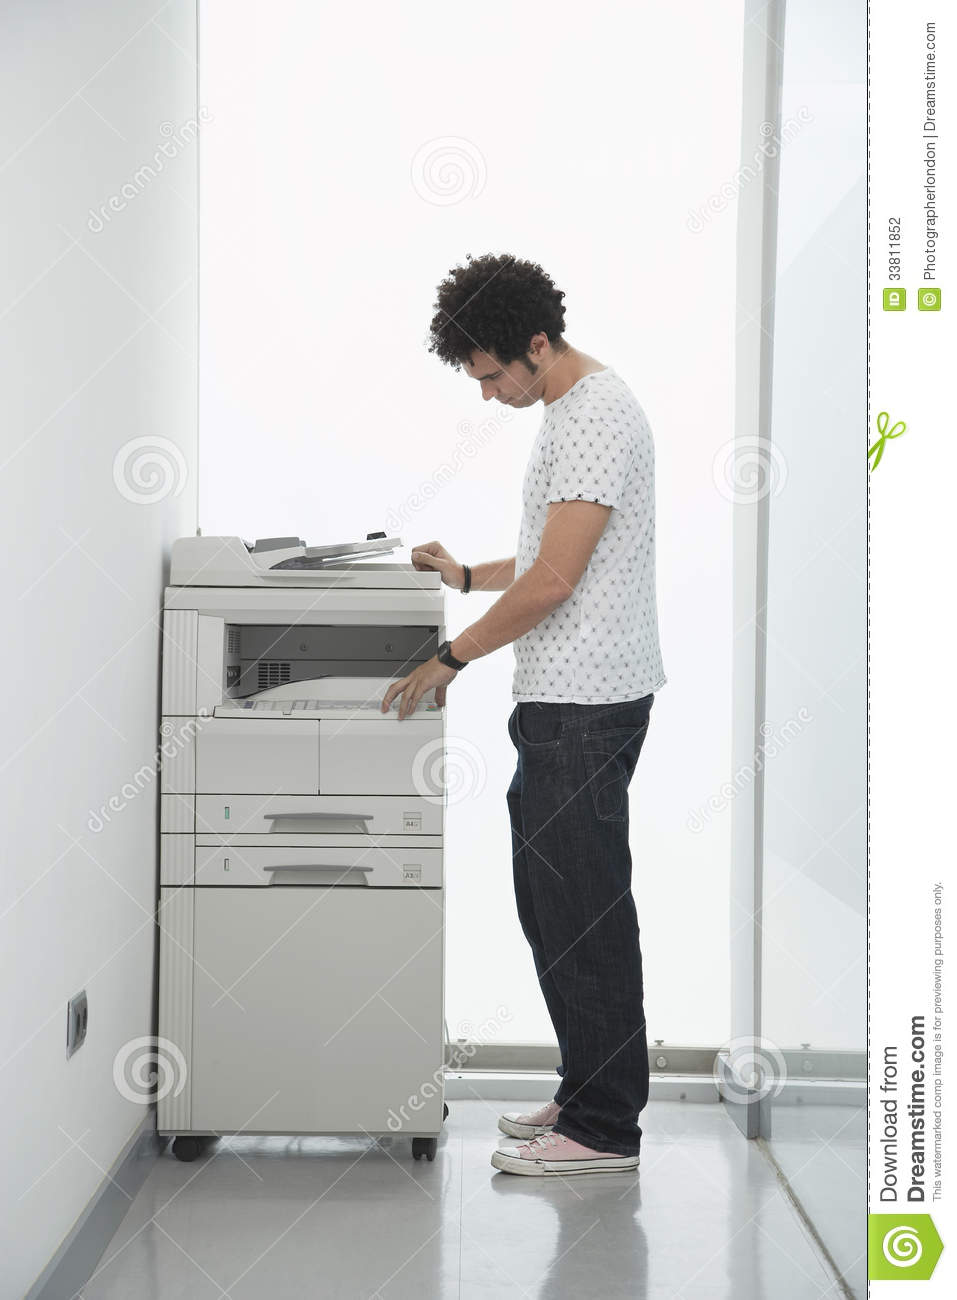 copy machine for office